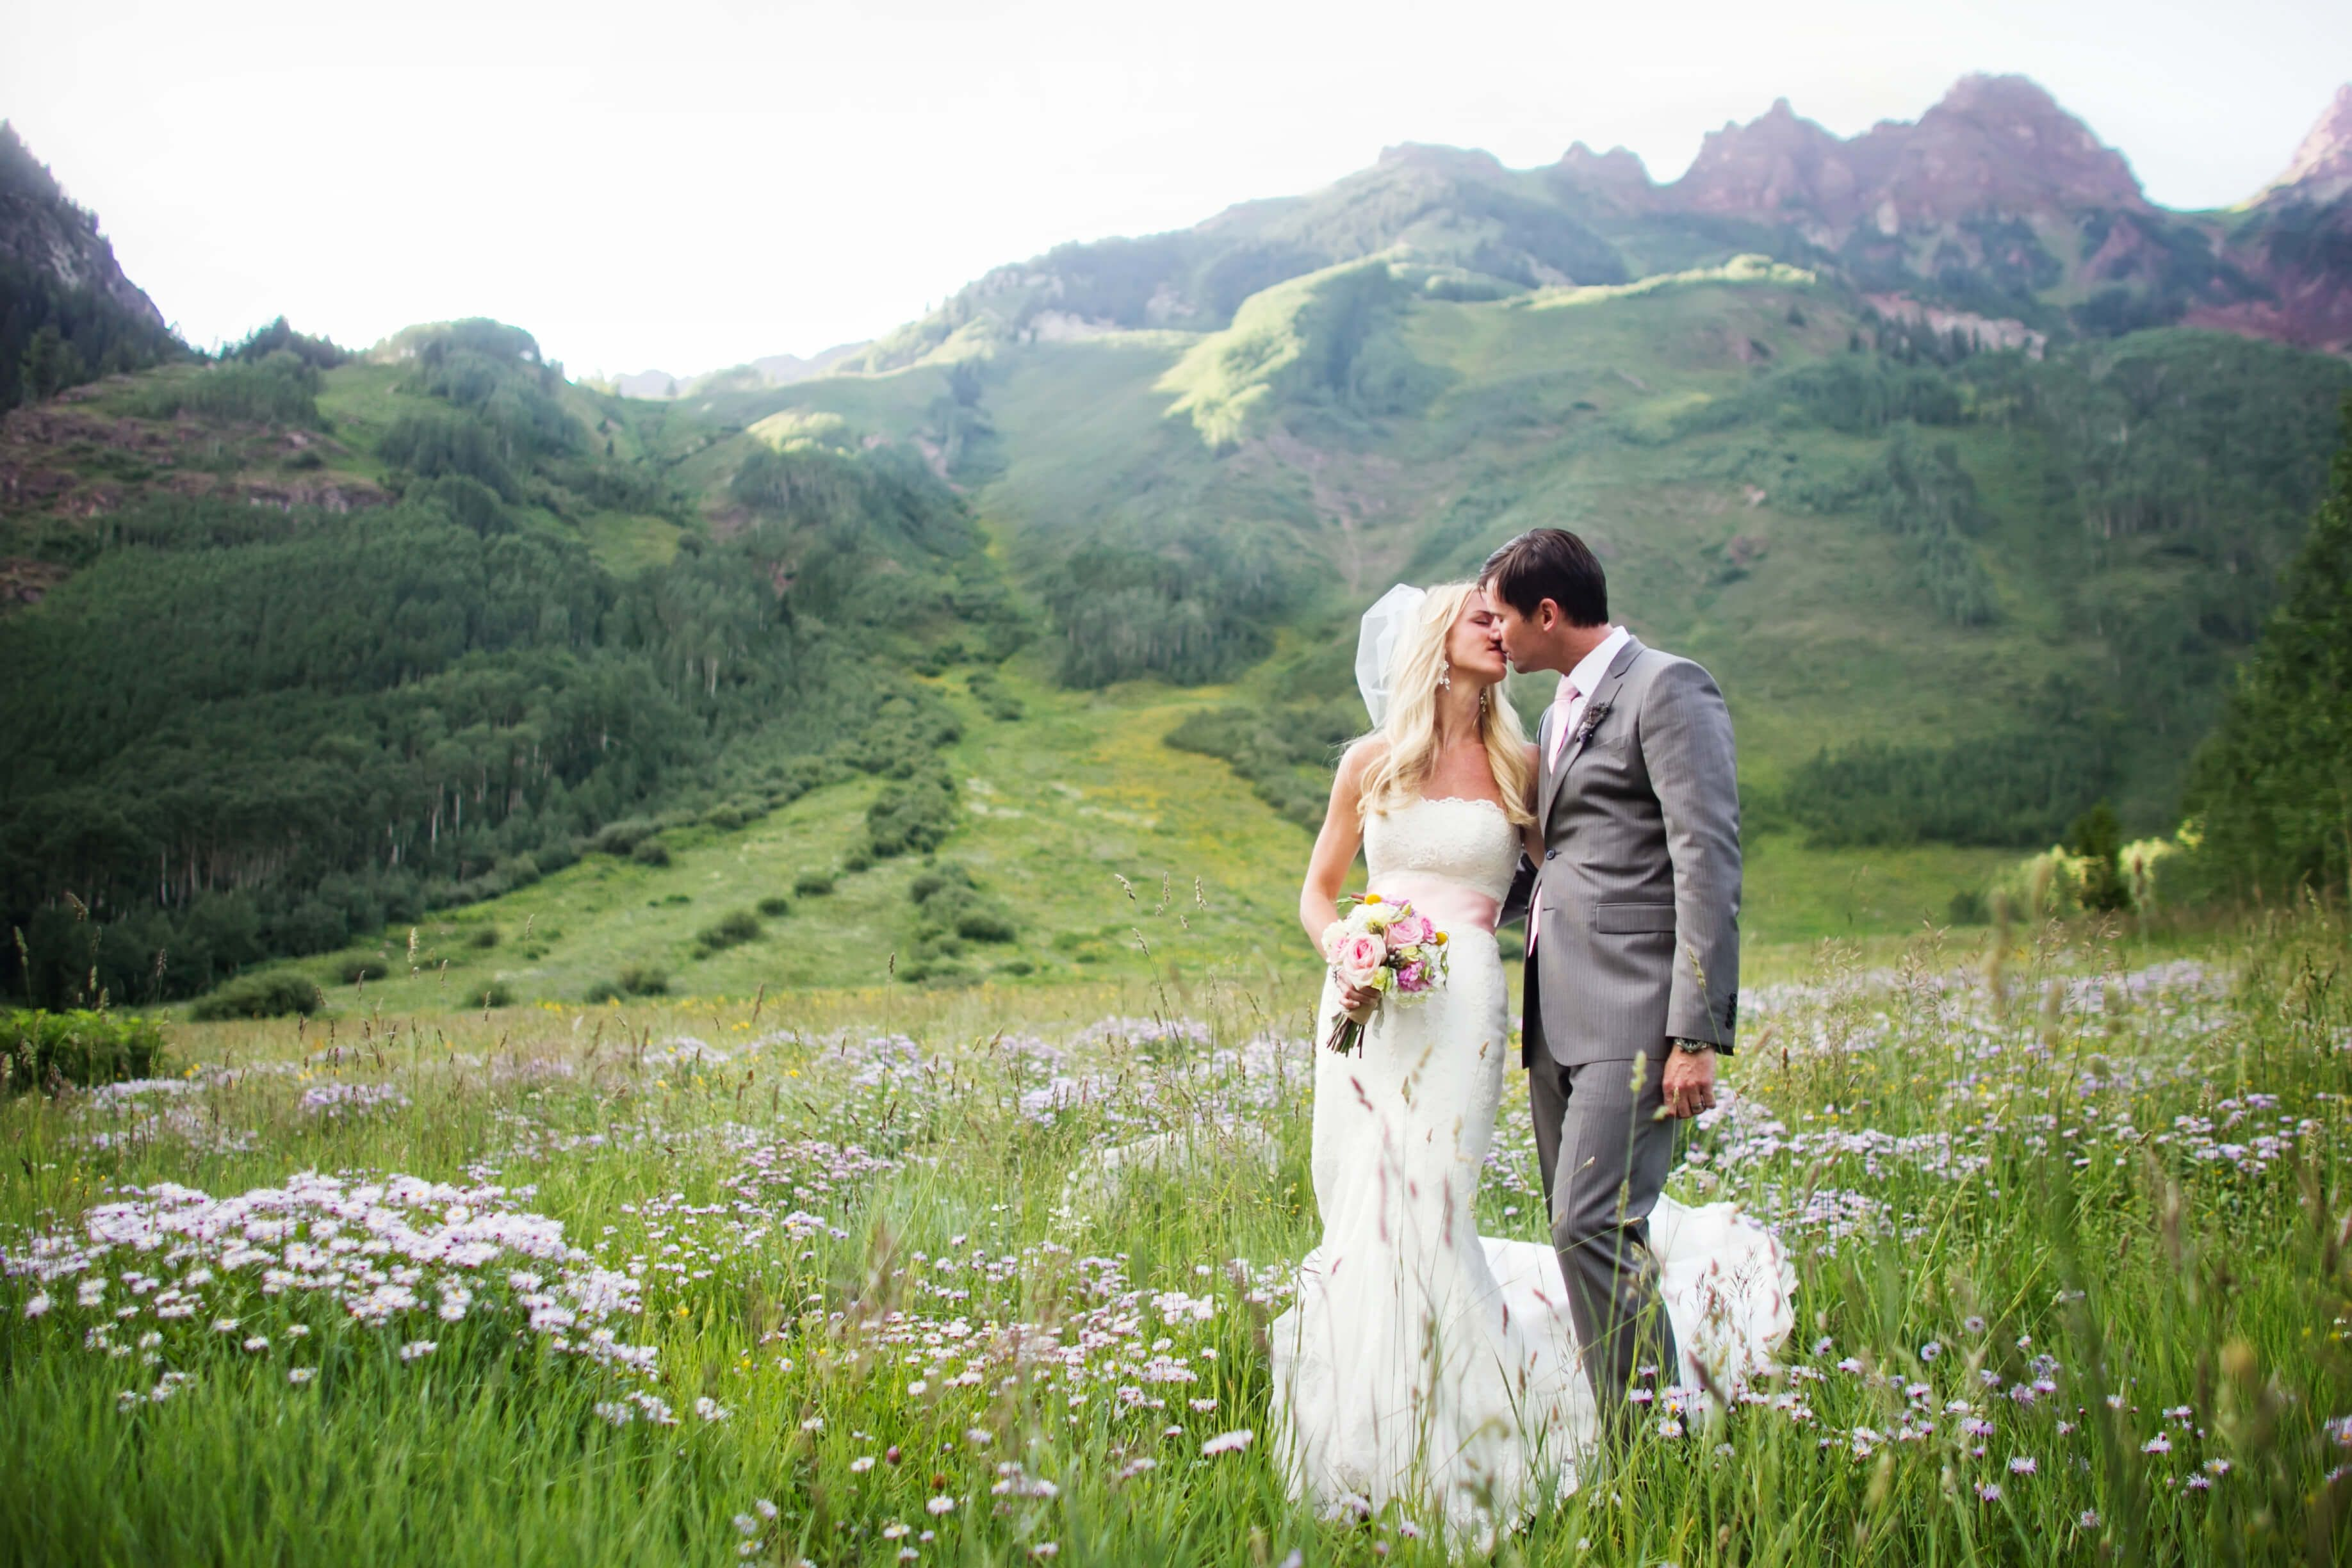 Dream Wedding Locations In The USA